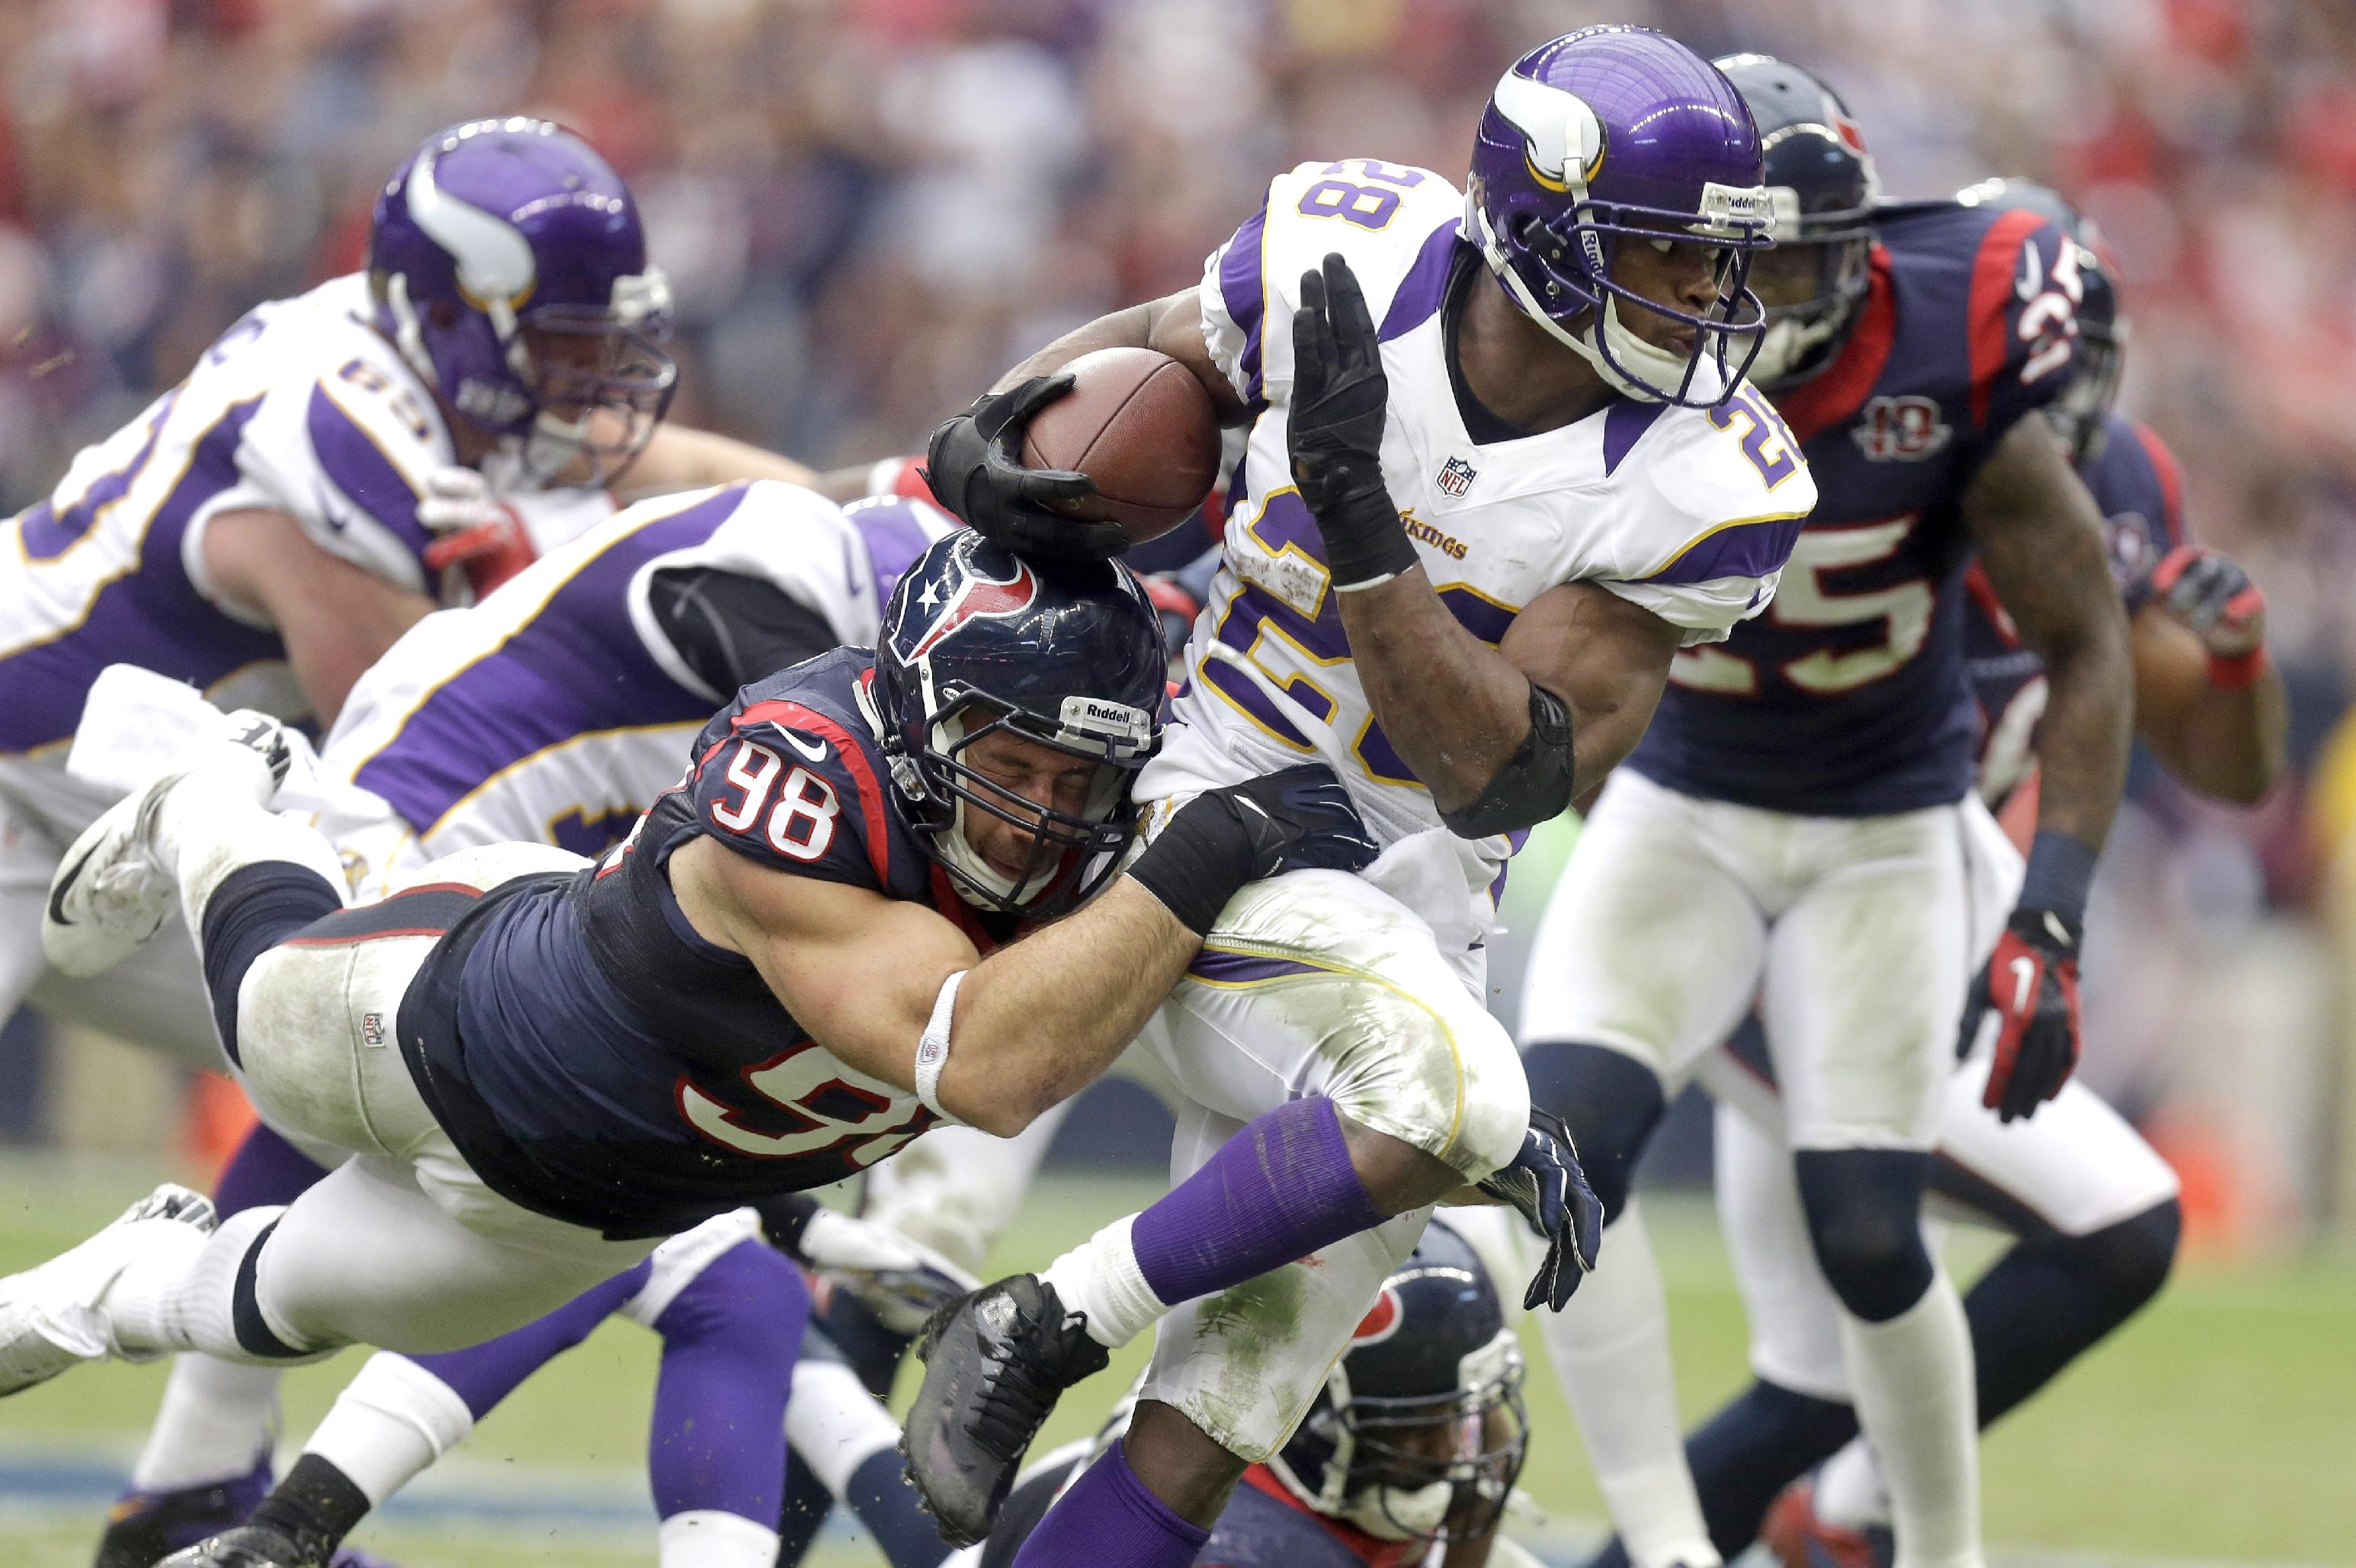 Adrian Peterson (28) tries to turn upfield as Houston Connor Barwin (98) latches on to him. (AP)